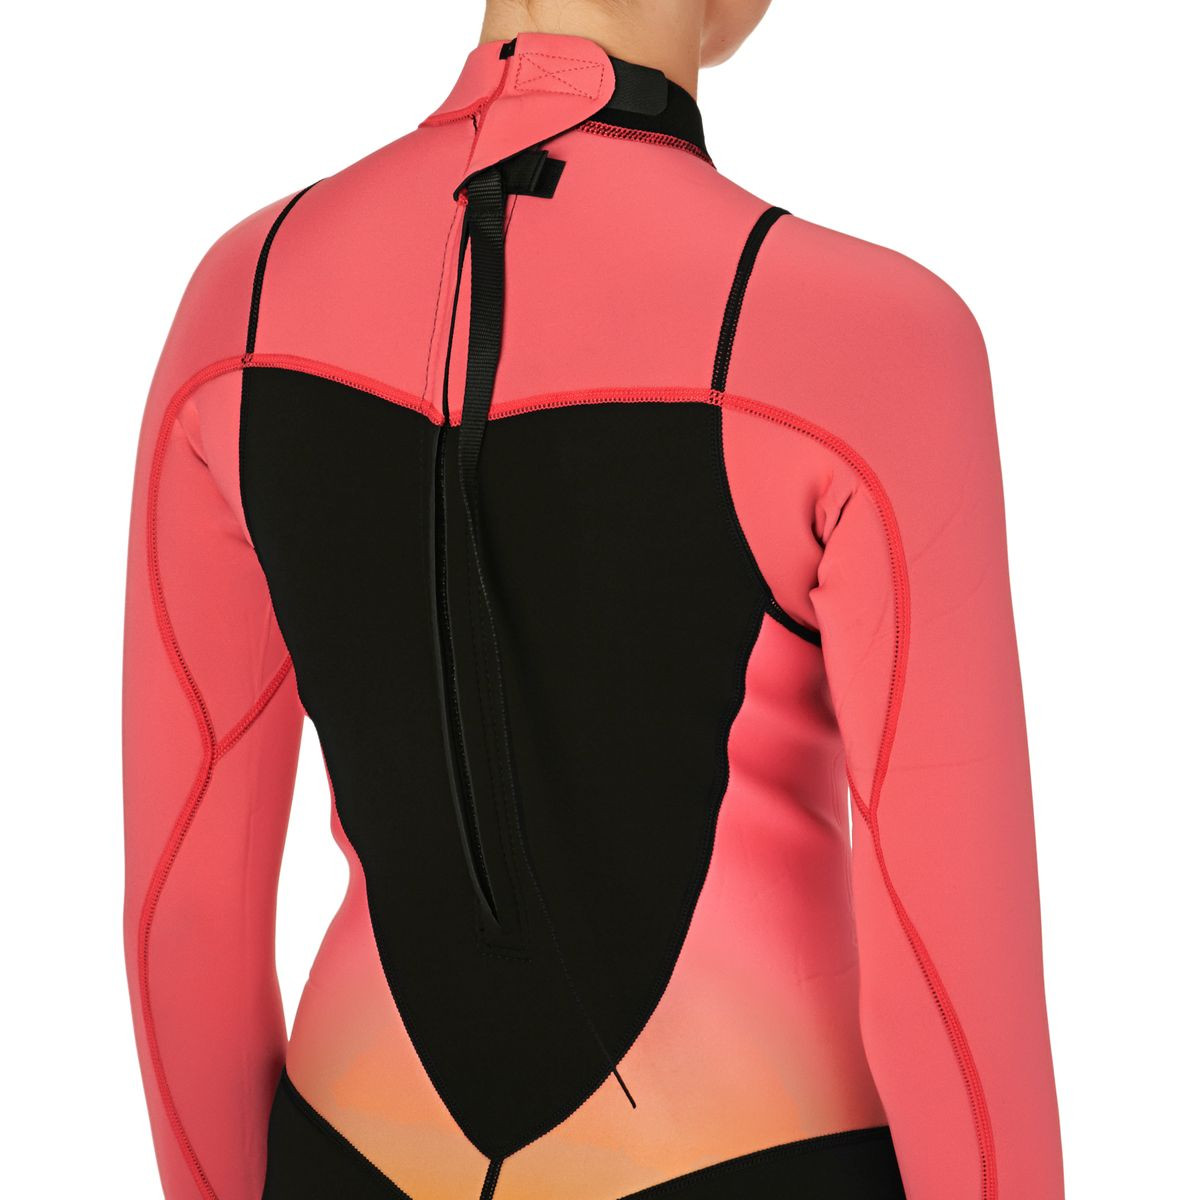 Roxy Womens Syncro 2mm Shorty Wetsuit - Paradise Pink